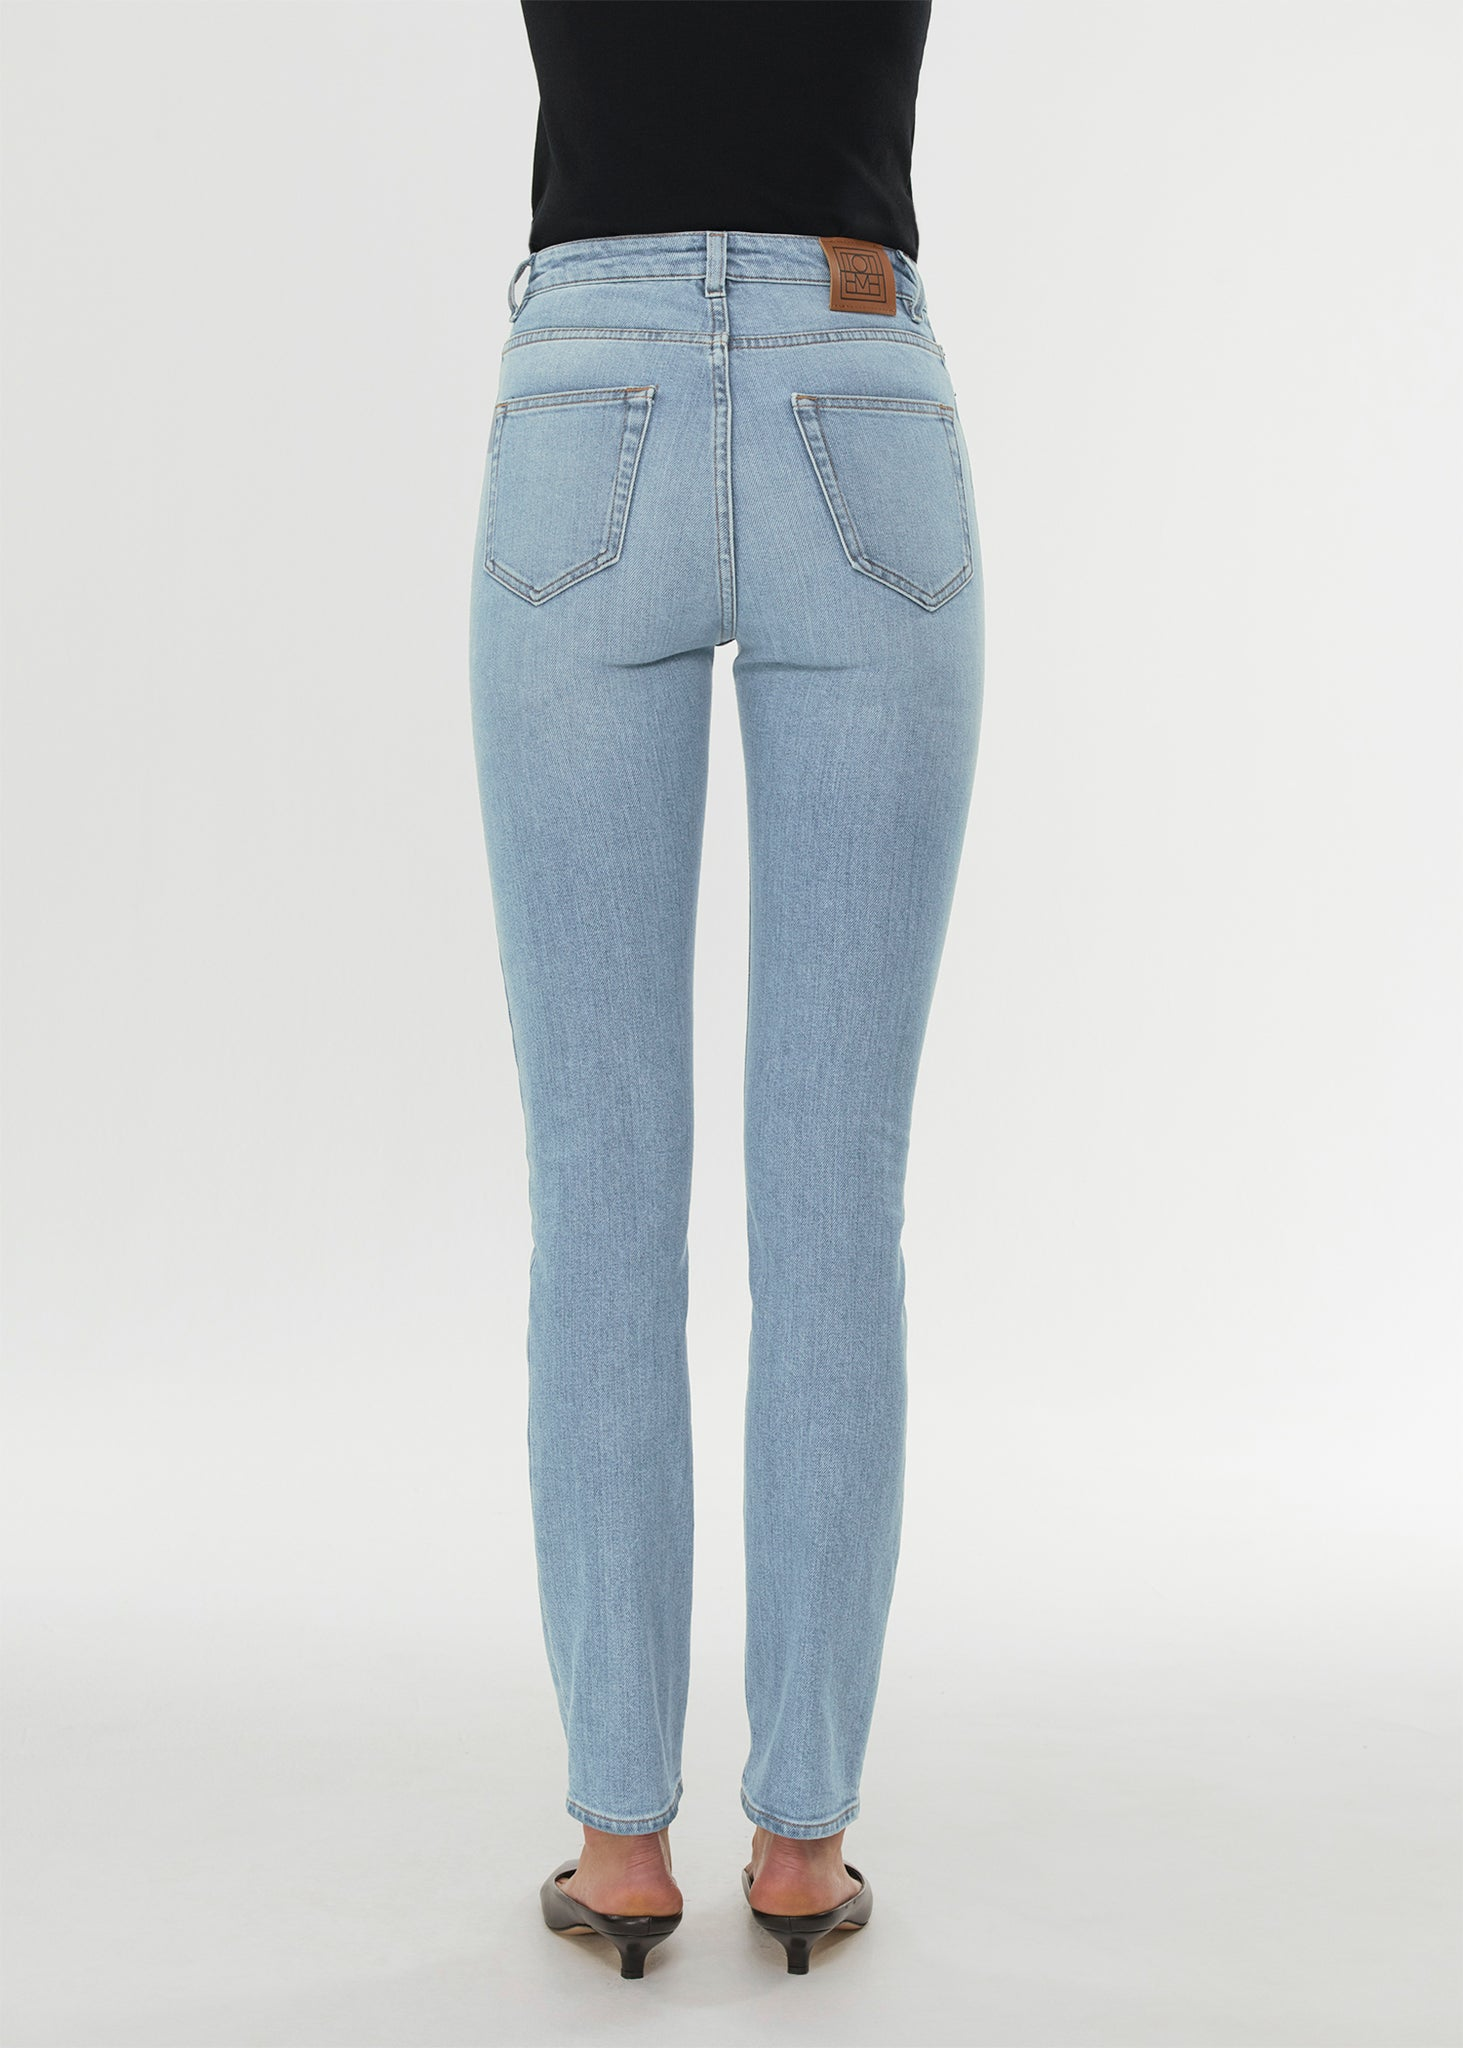 Skinny fit denim light blue wash